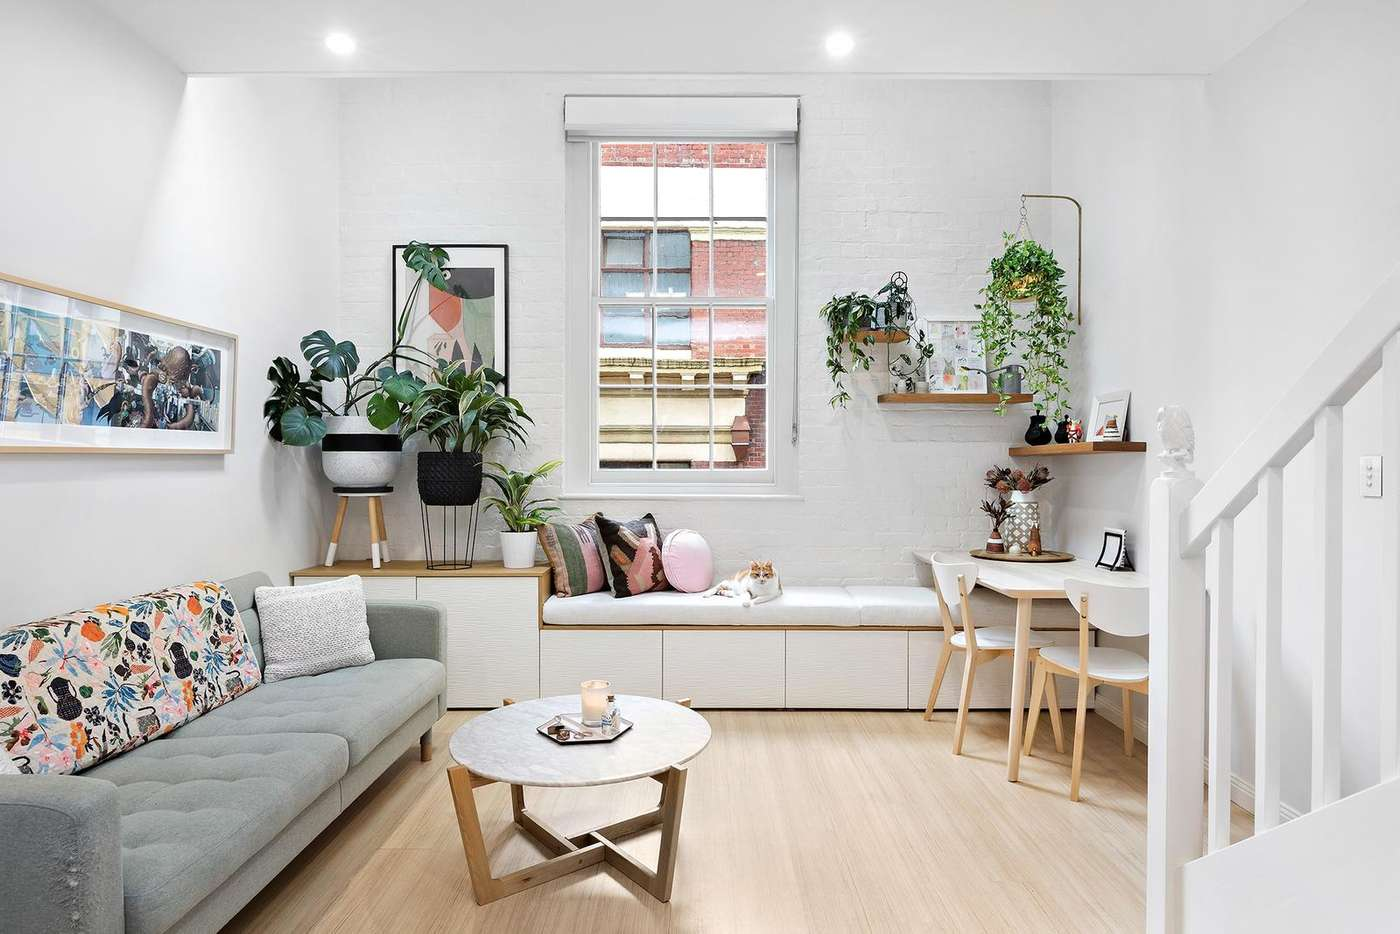 Main view of Homely apartment listing, 16/79-81 Franklin Street, Melbourne VIC 3000